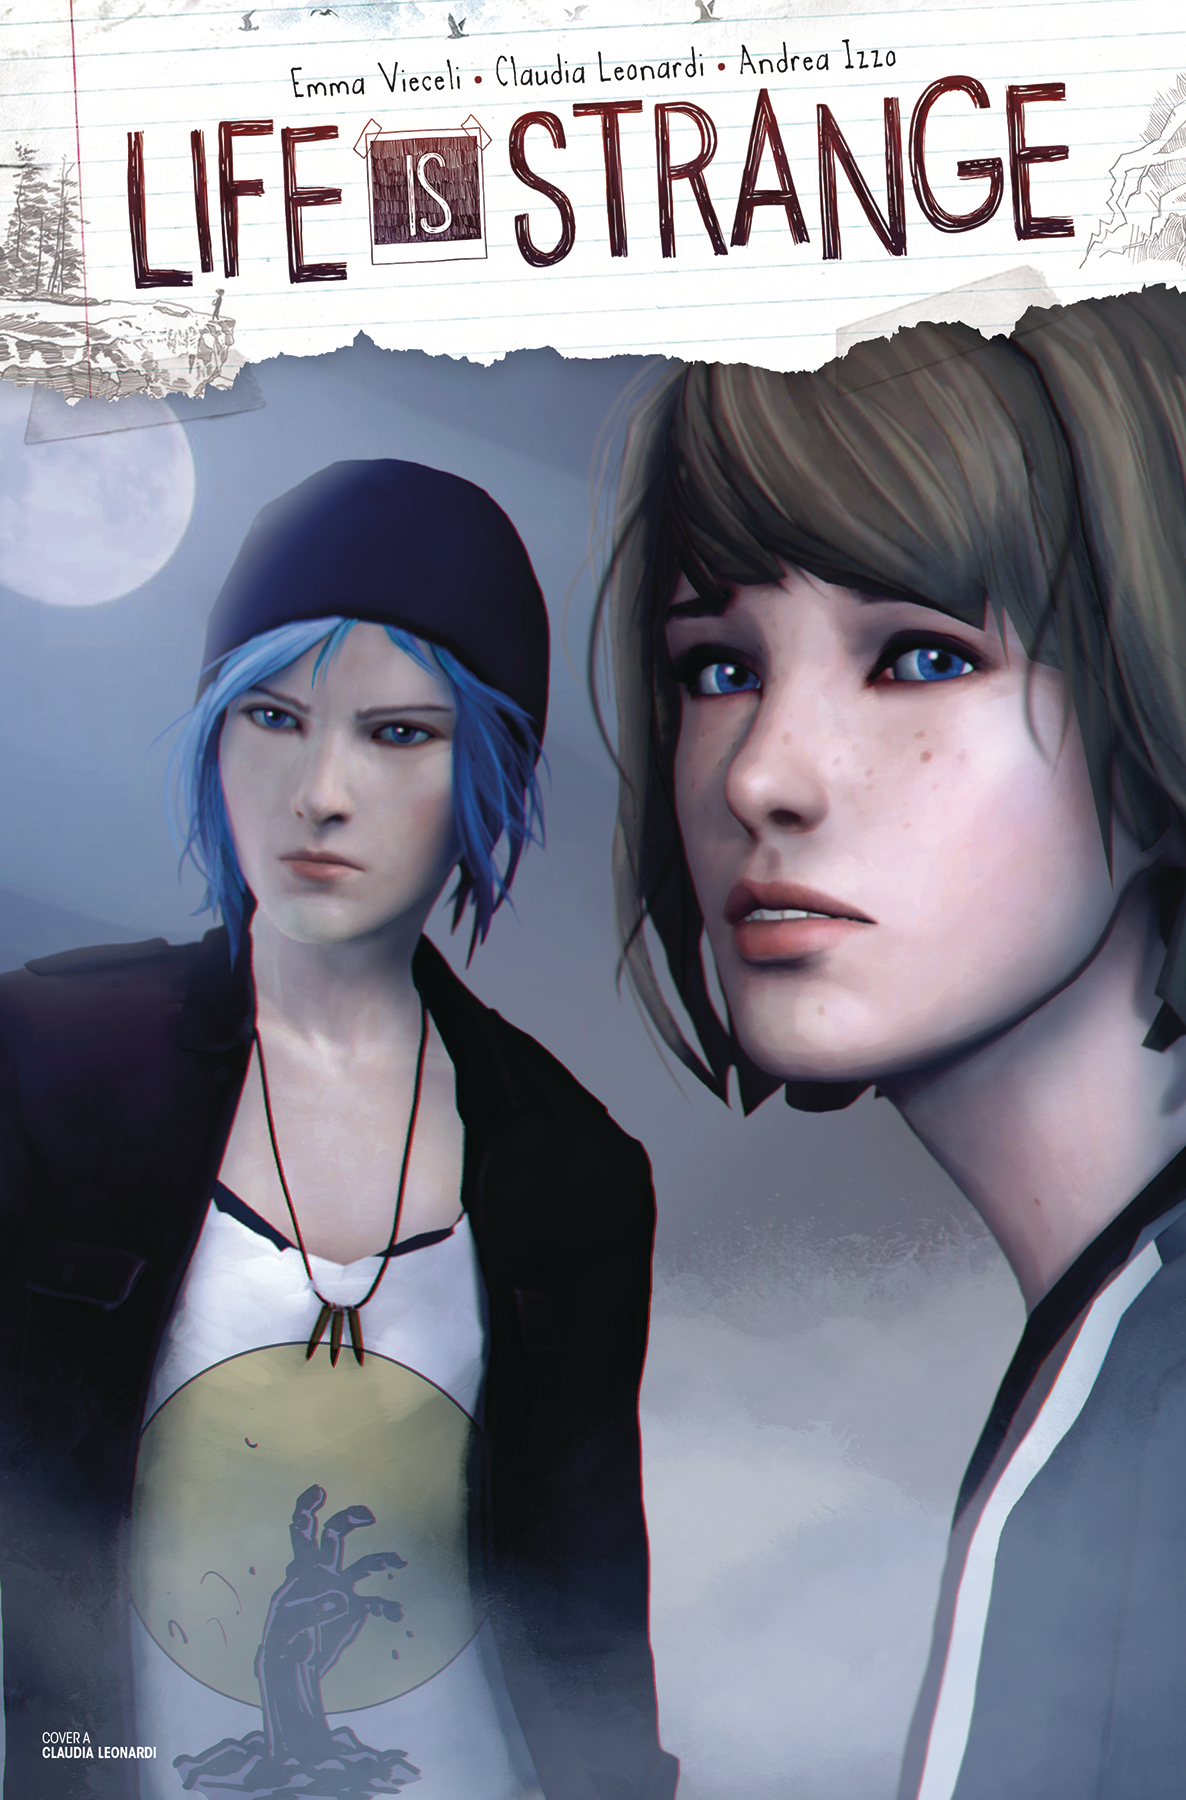 LIFE IS STRANGE #3 CVR B GAME ART